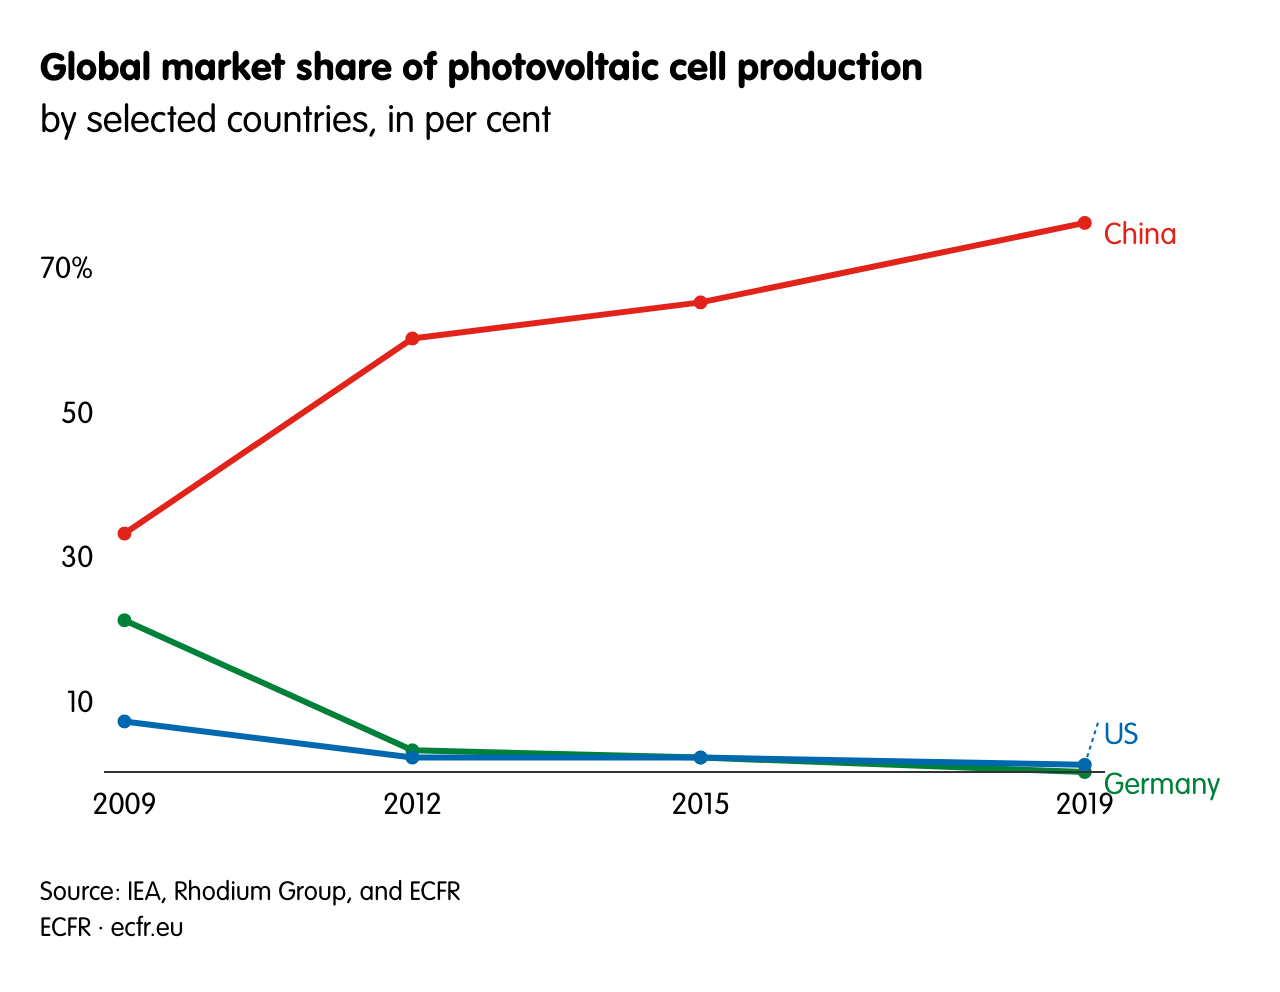 Global market share of photovoltaic cell production